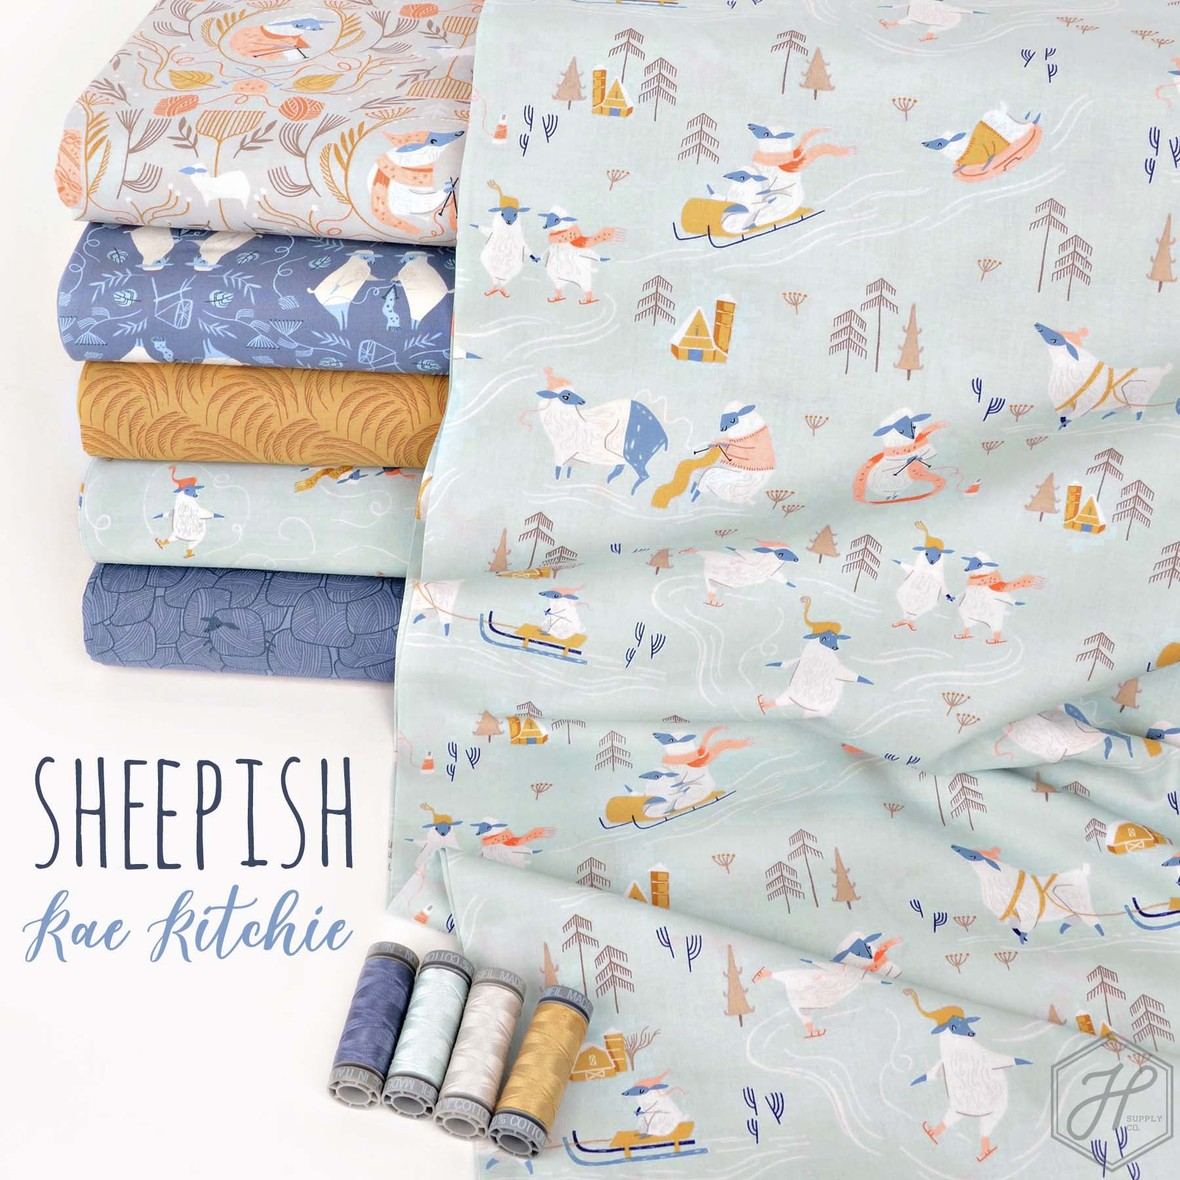 Sheepish Fabric Poster Rae Ritchie at Hawthorne Supply Co